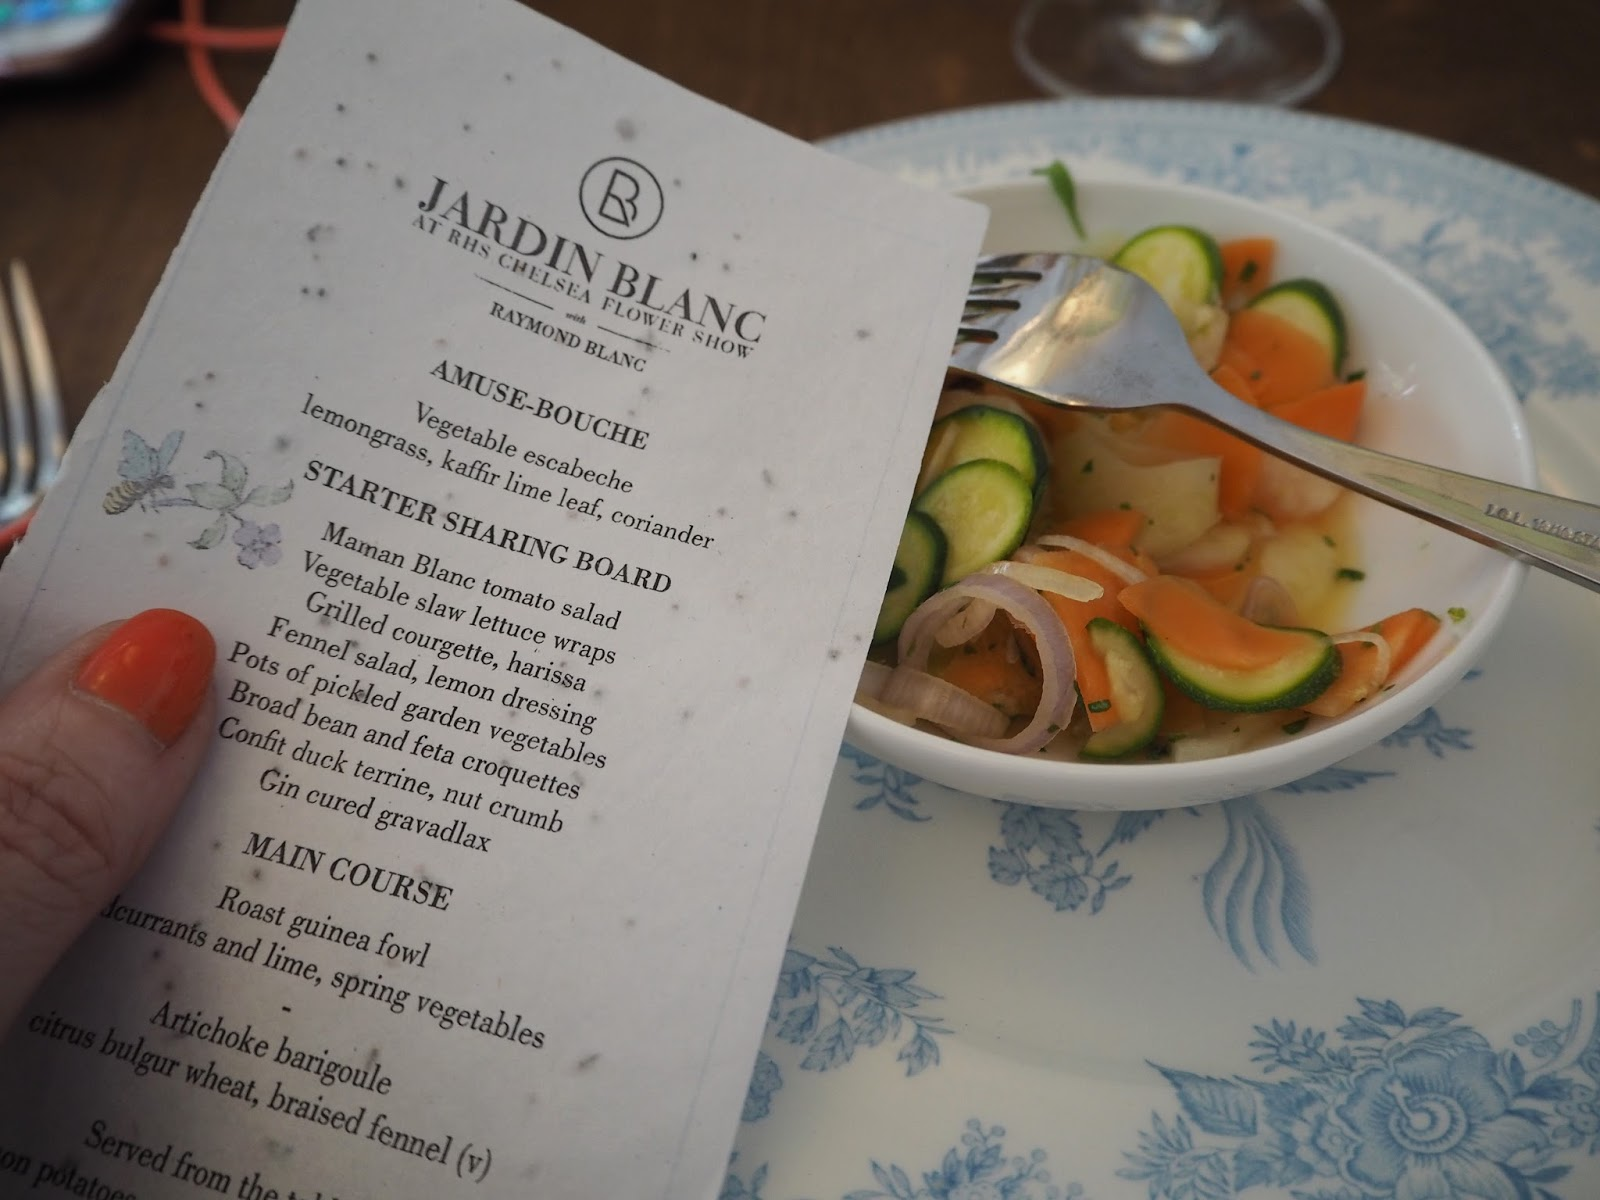 Lunch menu Jardin Blanc, Chelsea Flower Show